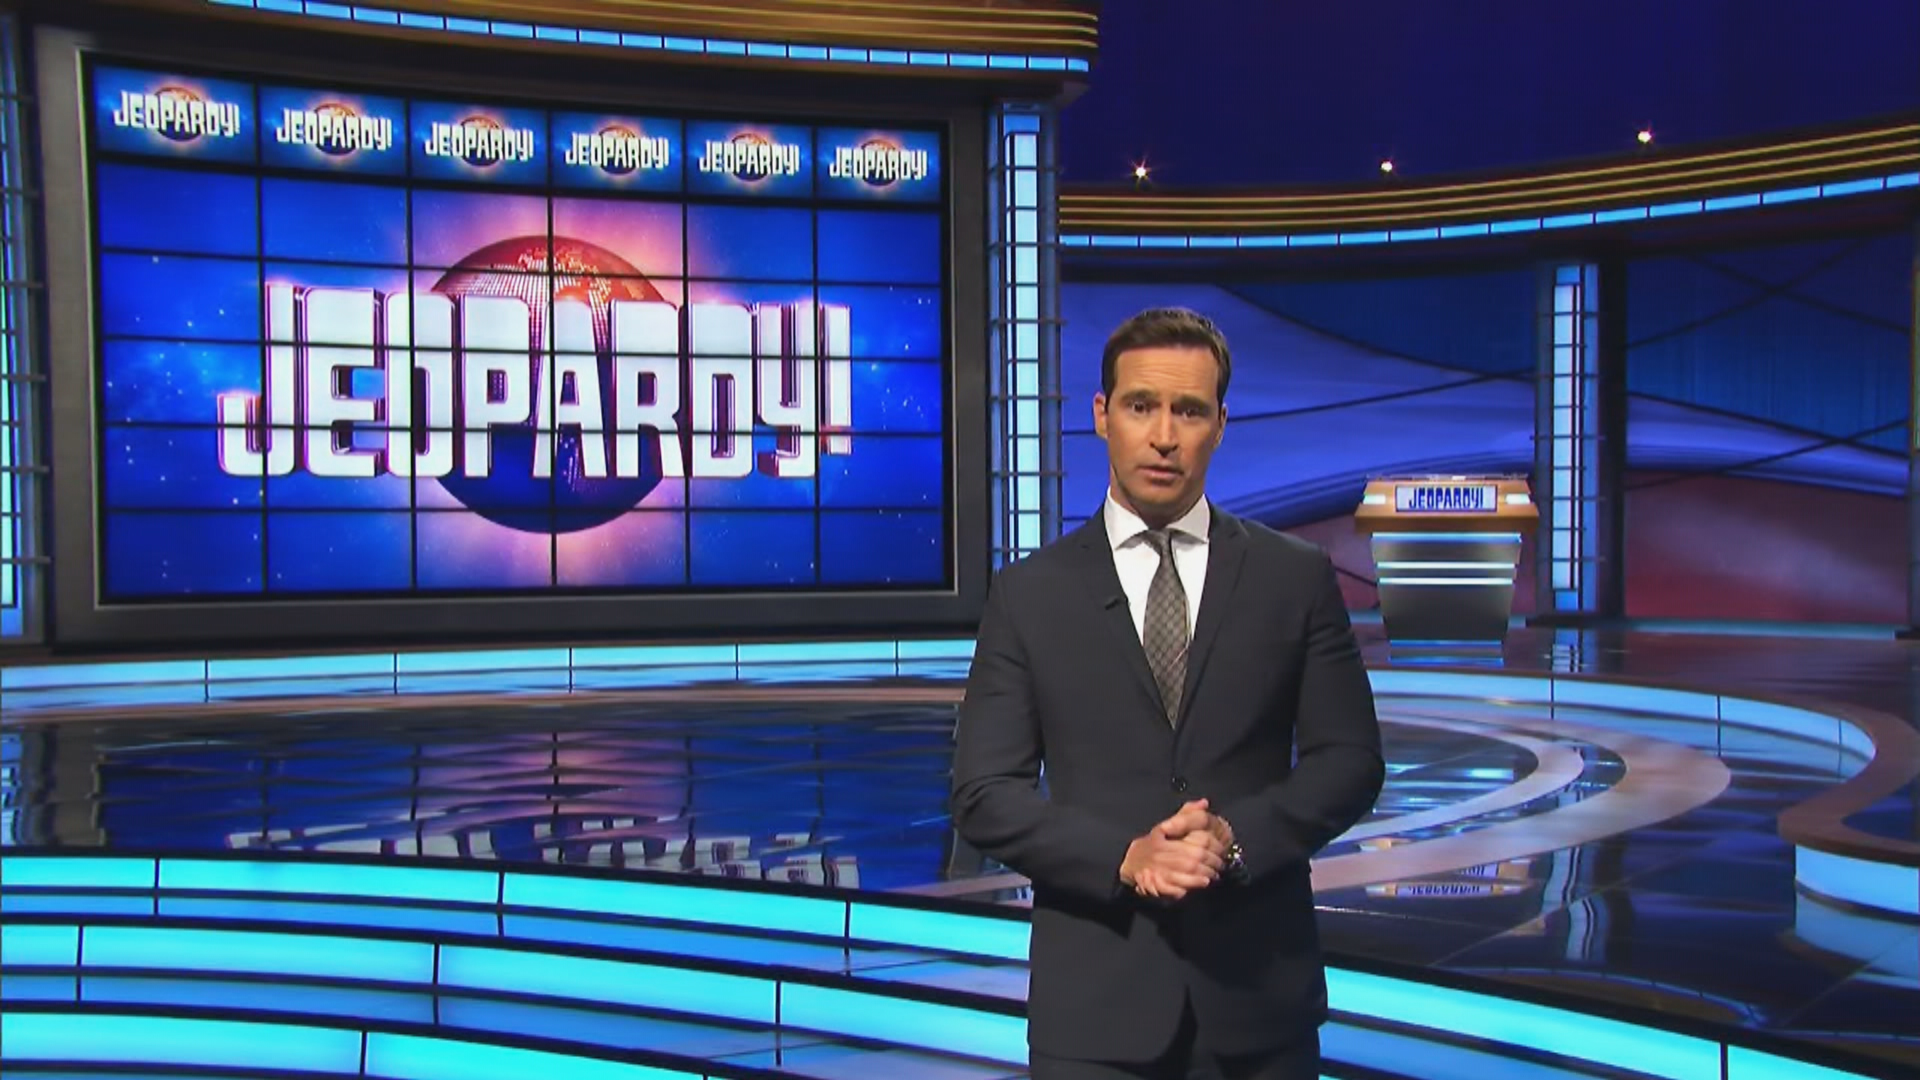 New 'Jeopardy!' host Mike Richards apologizes after past sexist comments surface